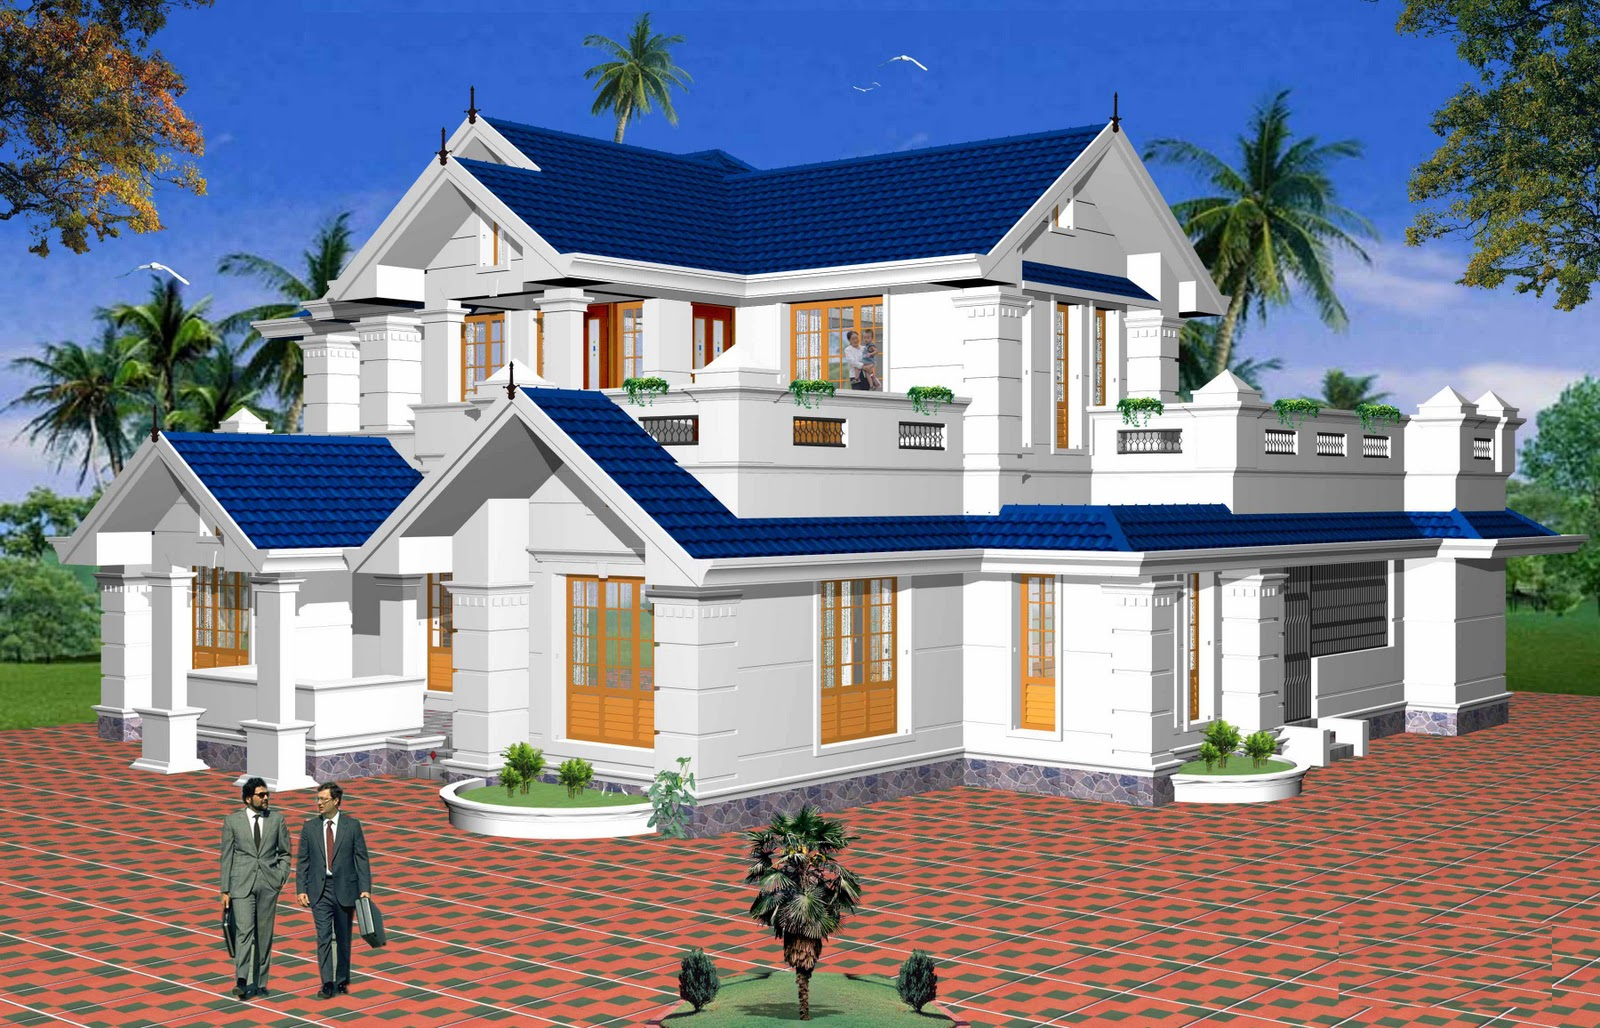 ... , House Plans, House Design, Front Elevation, Costomized House Plan